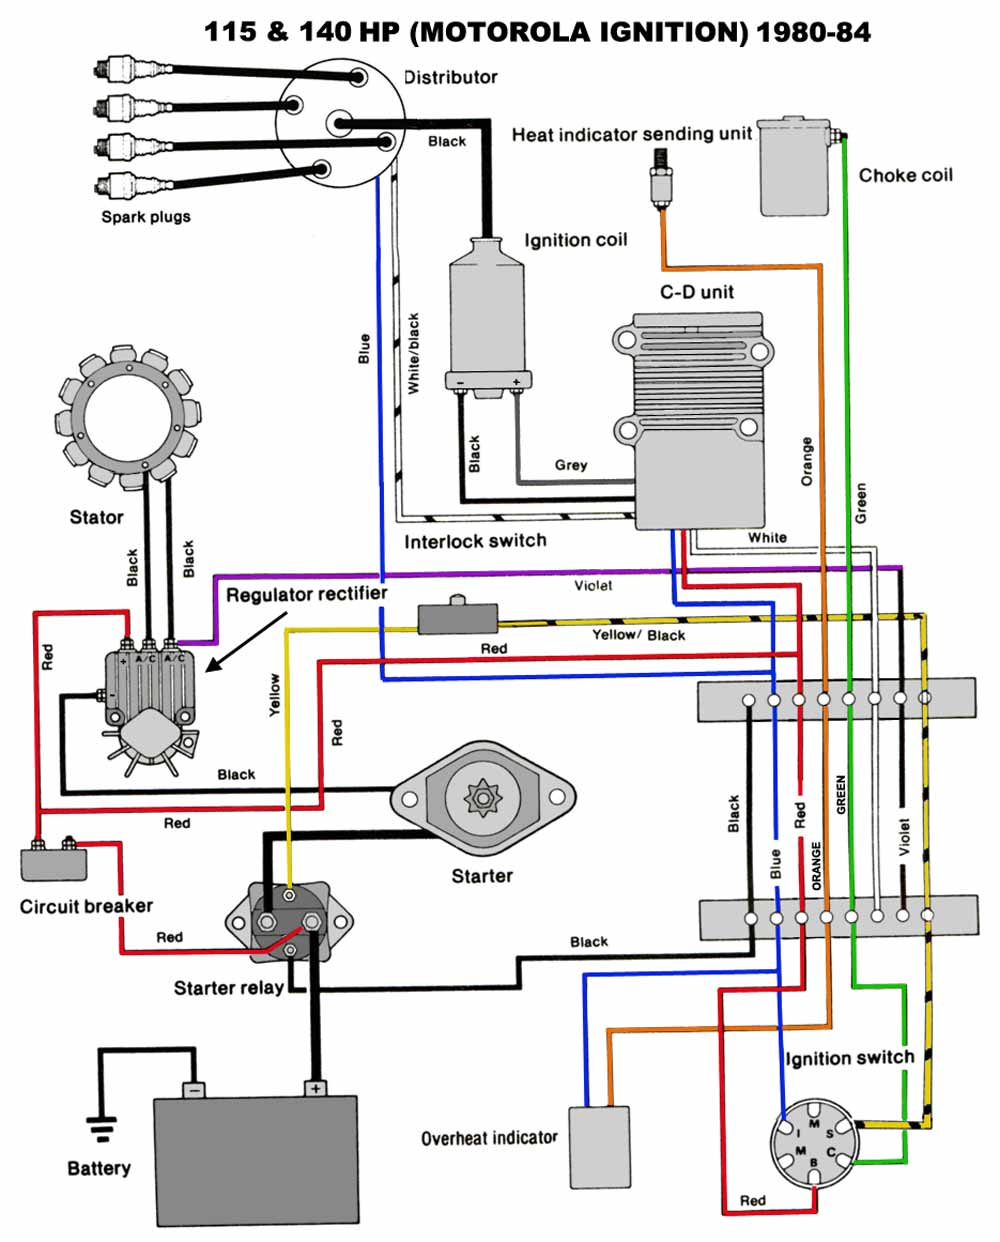 140 mercruiser engine wiring diagram wiring diagram perfomance140 mercruiser engine wiring diagram wiring diagram expert 140 mercruiser engine wiring diagram